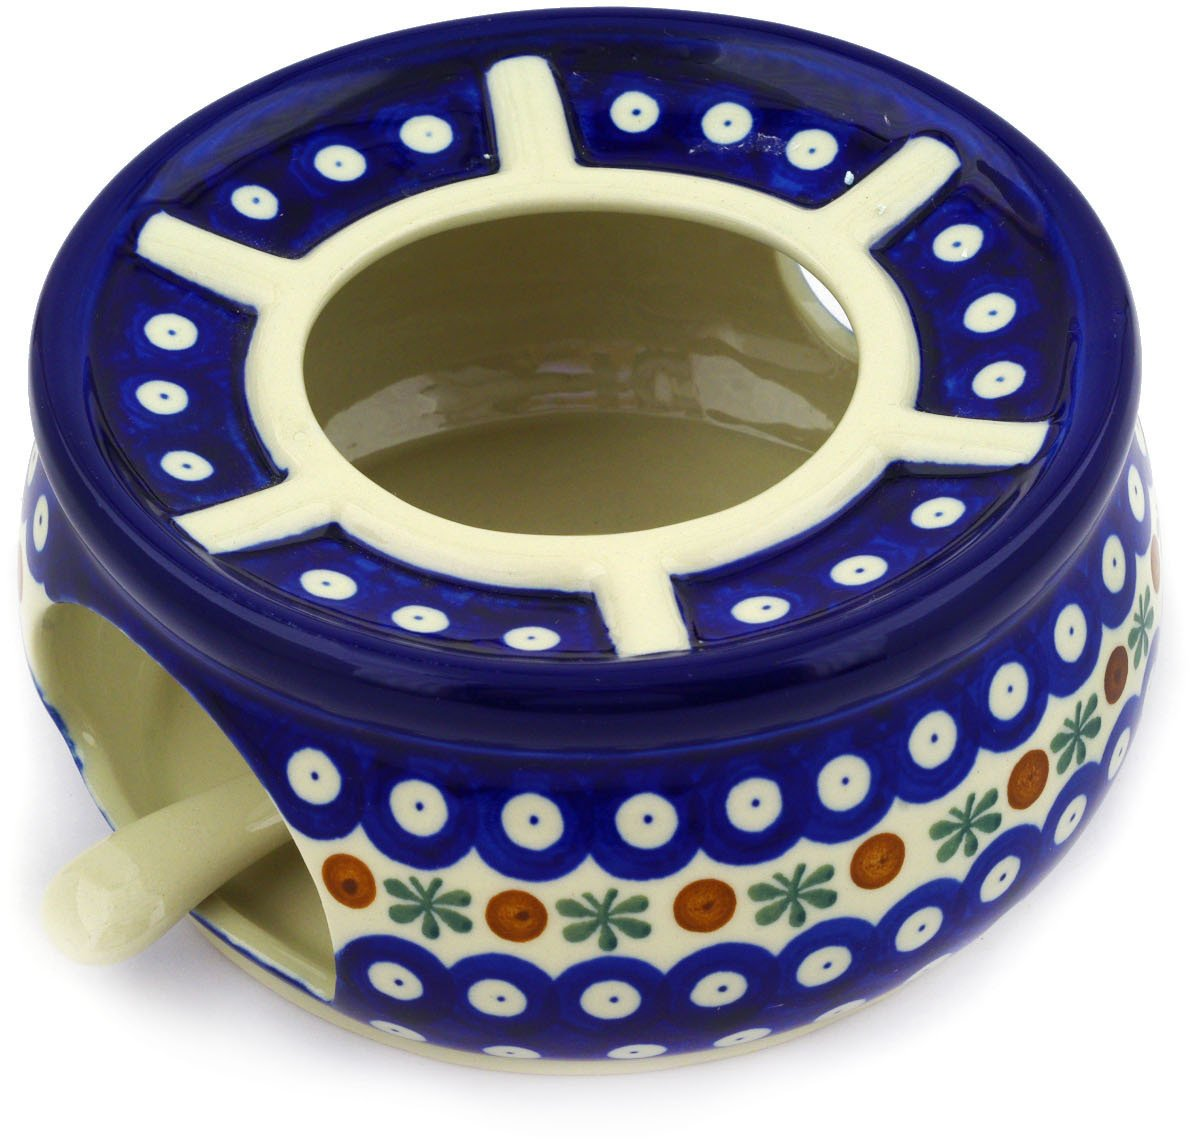 Polish Pottery Heater with Candle Holder 6-inch Mosquito